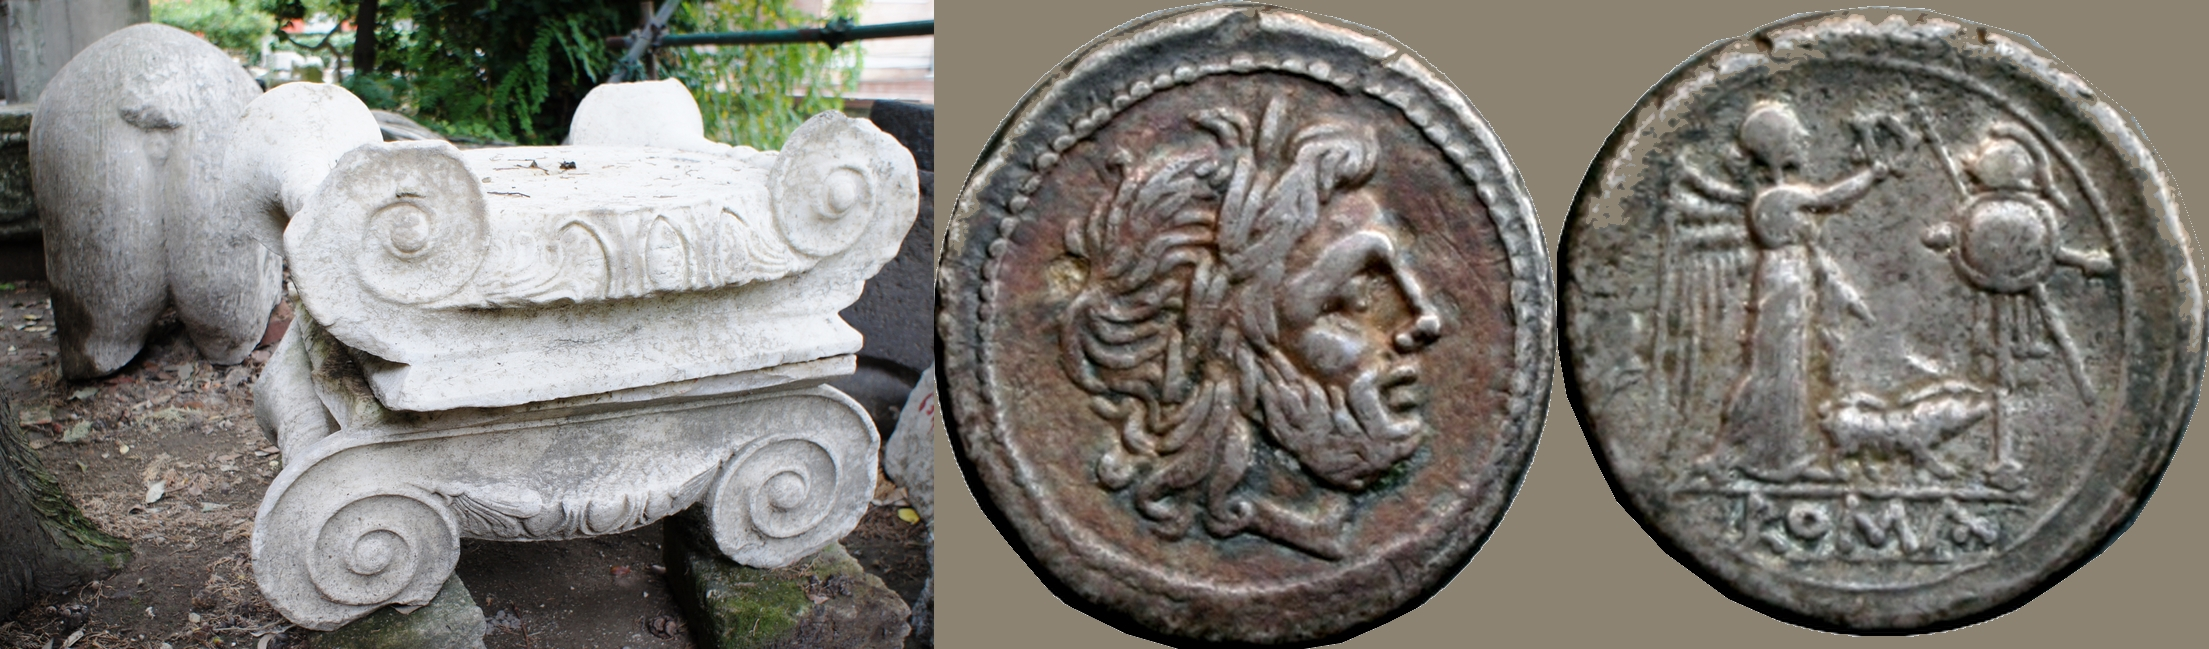 121/1 coin of 210BC with Jupiter, Victory, Trophy and Pig. beside Ionic capitals and a Pig's rear-end, discarded marble fragments at Puteoli amphitheatre